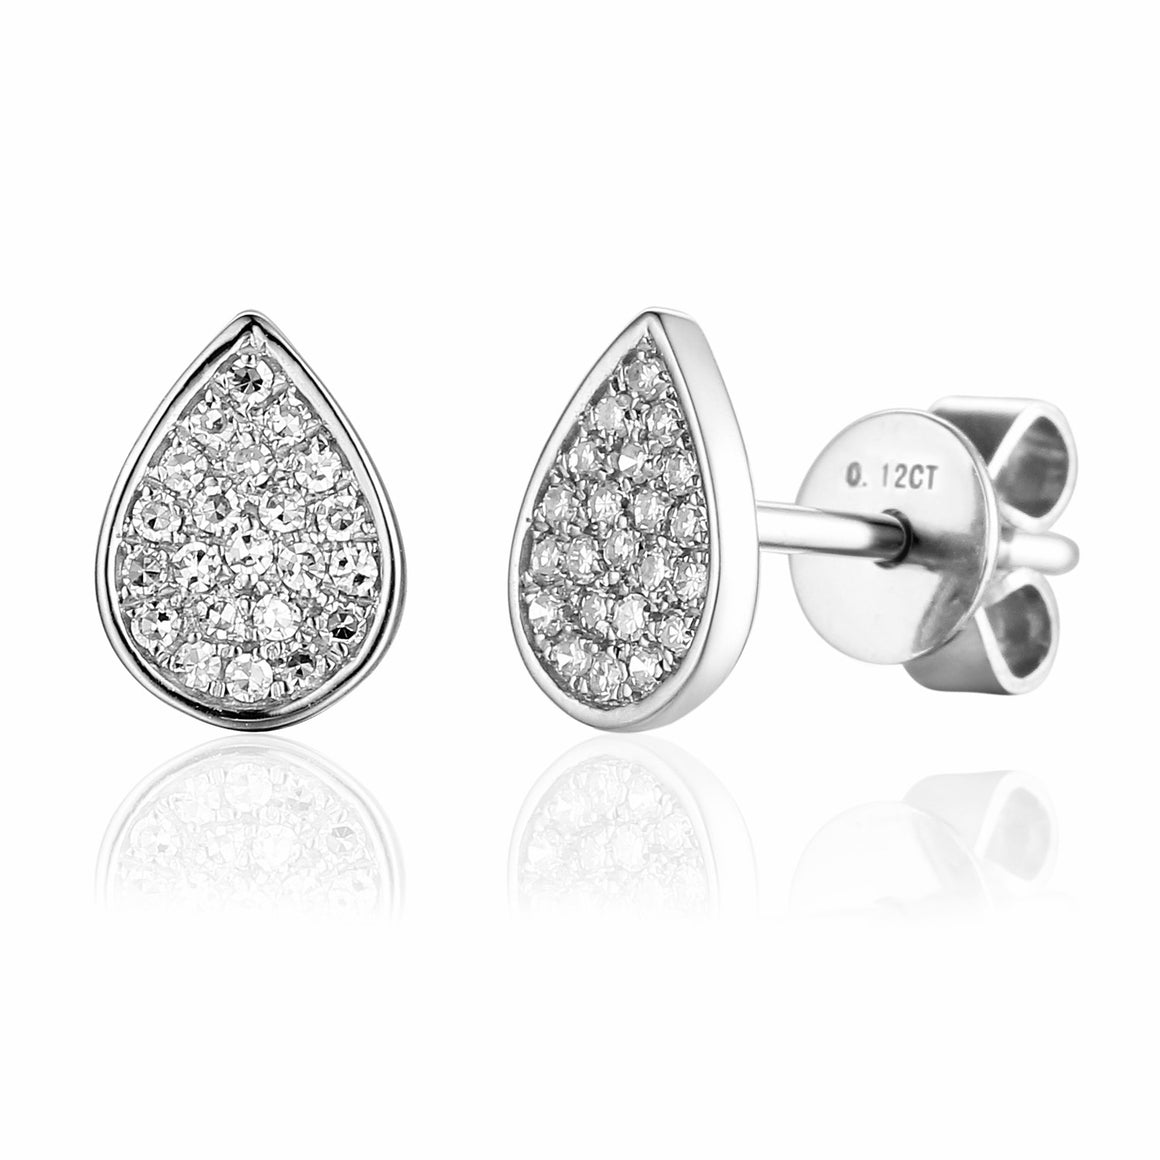 18ct White Gold Pave Pear Shape Geometric Stud Earrings